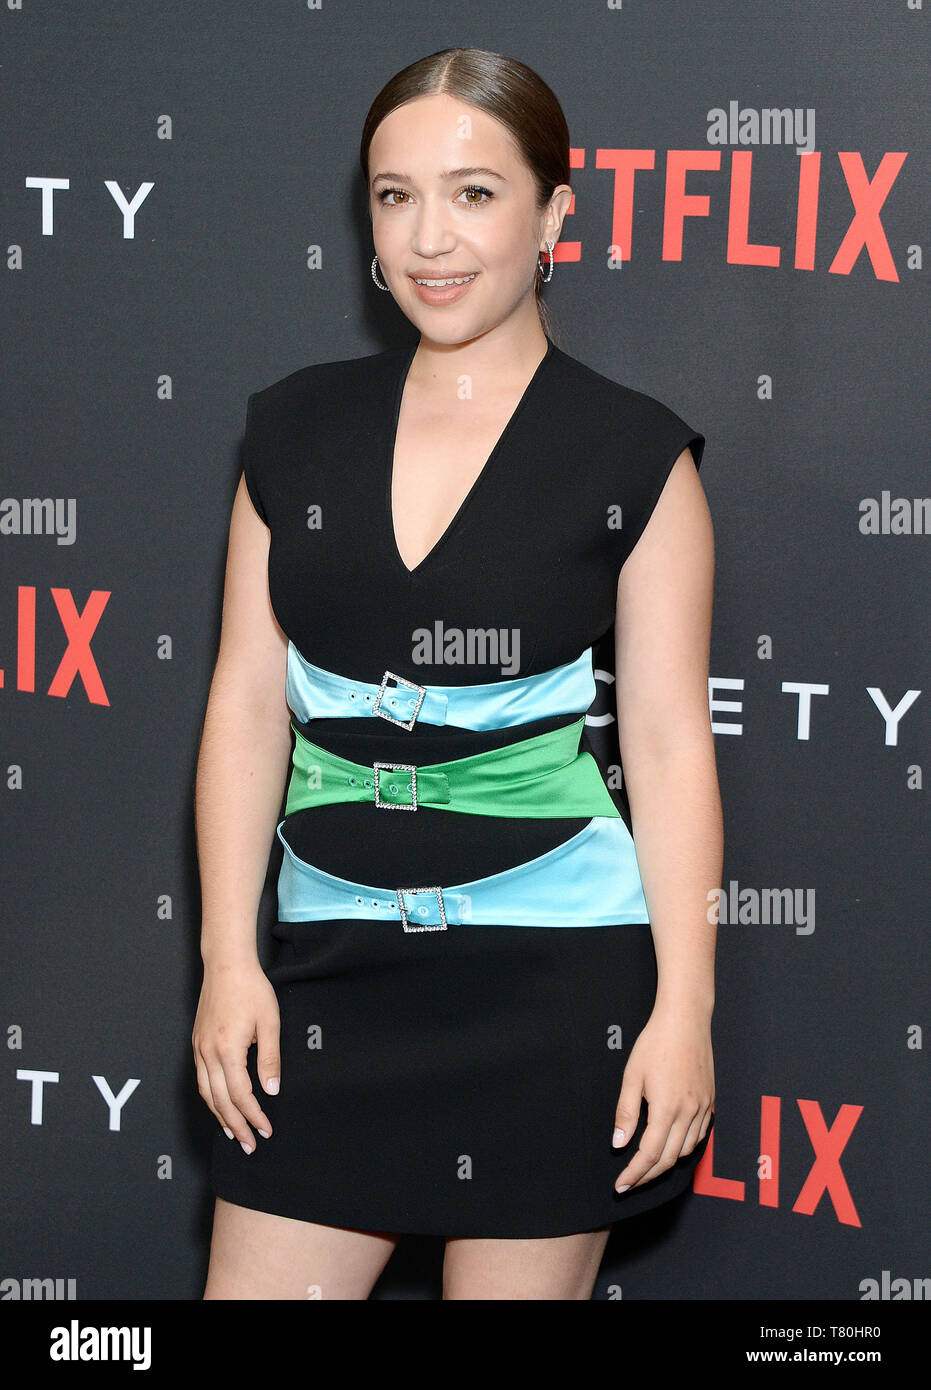 Los Angeles, California, USA. 09th May, 2019. Pictured: Gideon Adlon Netflix - The Society Season 1 Premiere - Arrivals 5/9/19, Los Angeles, California, United States of America Credit: Broadimage Entertainment/Alamy Live News - Stock Image